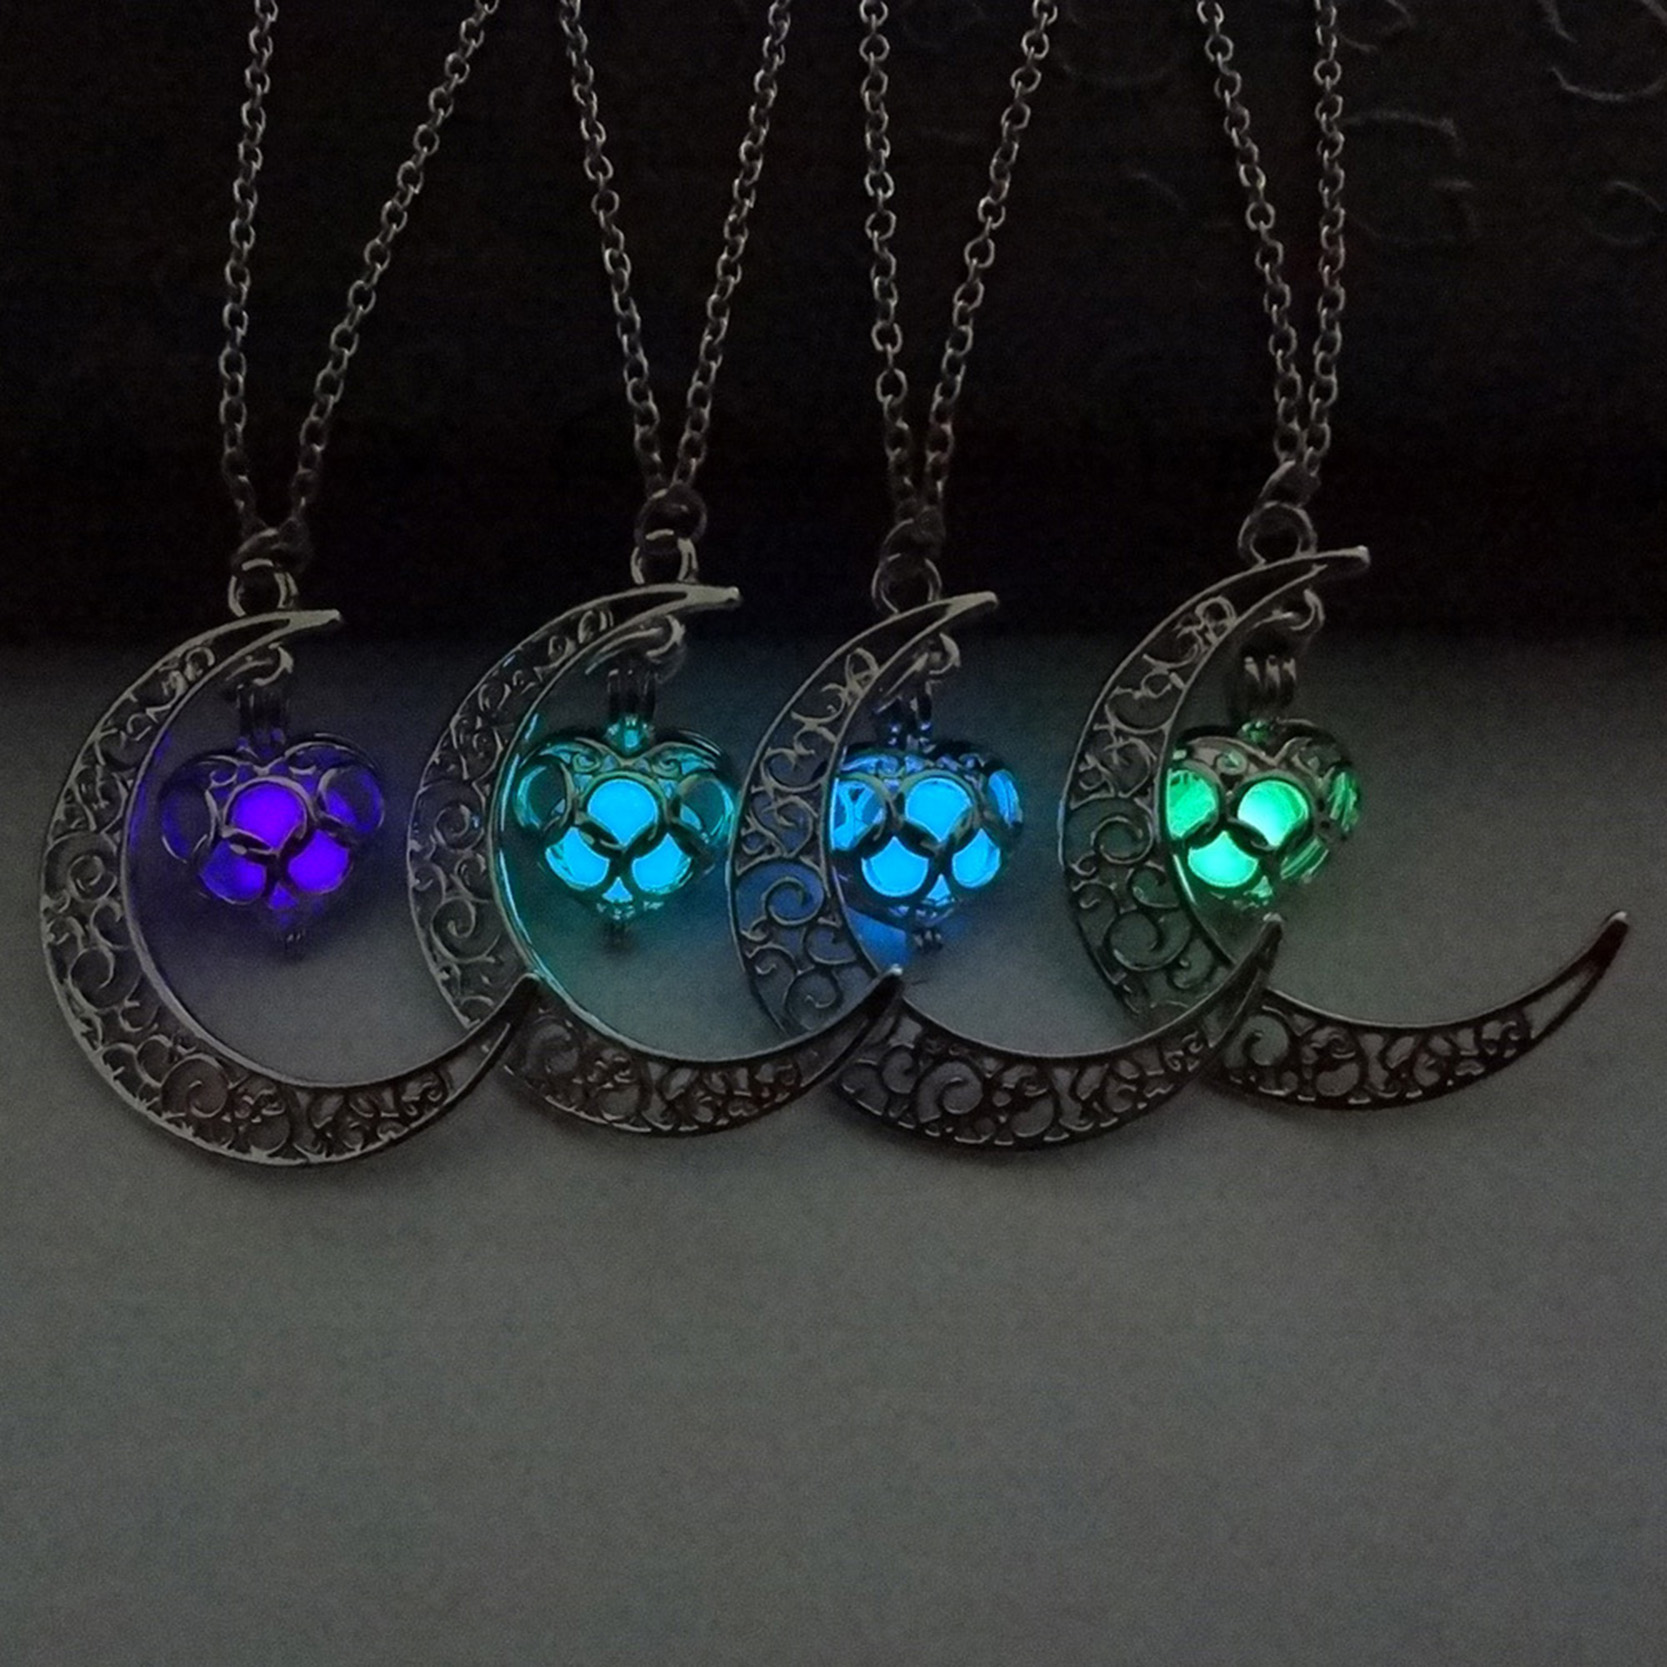 Buy 2016 Glowing In The Dark Pendant Necklaces Silver Plated Chain  Necklaces Hollow Moon Heart Choker Necklace Collares Jewelry Online e1ea529684e2